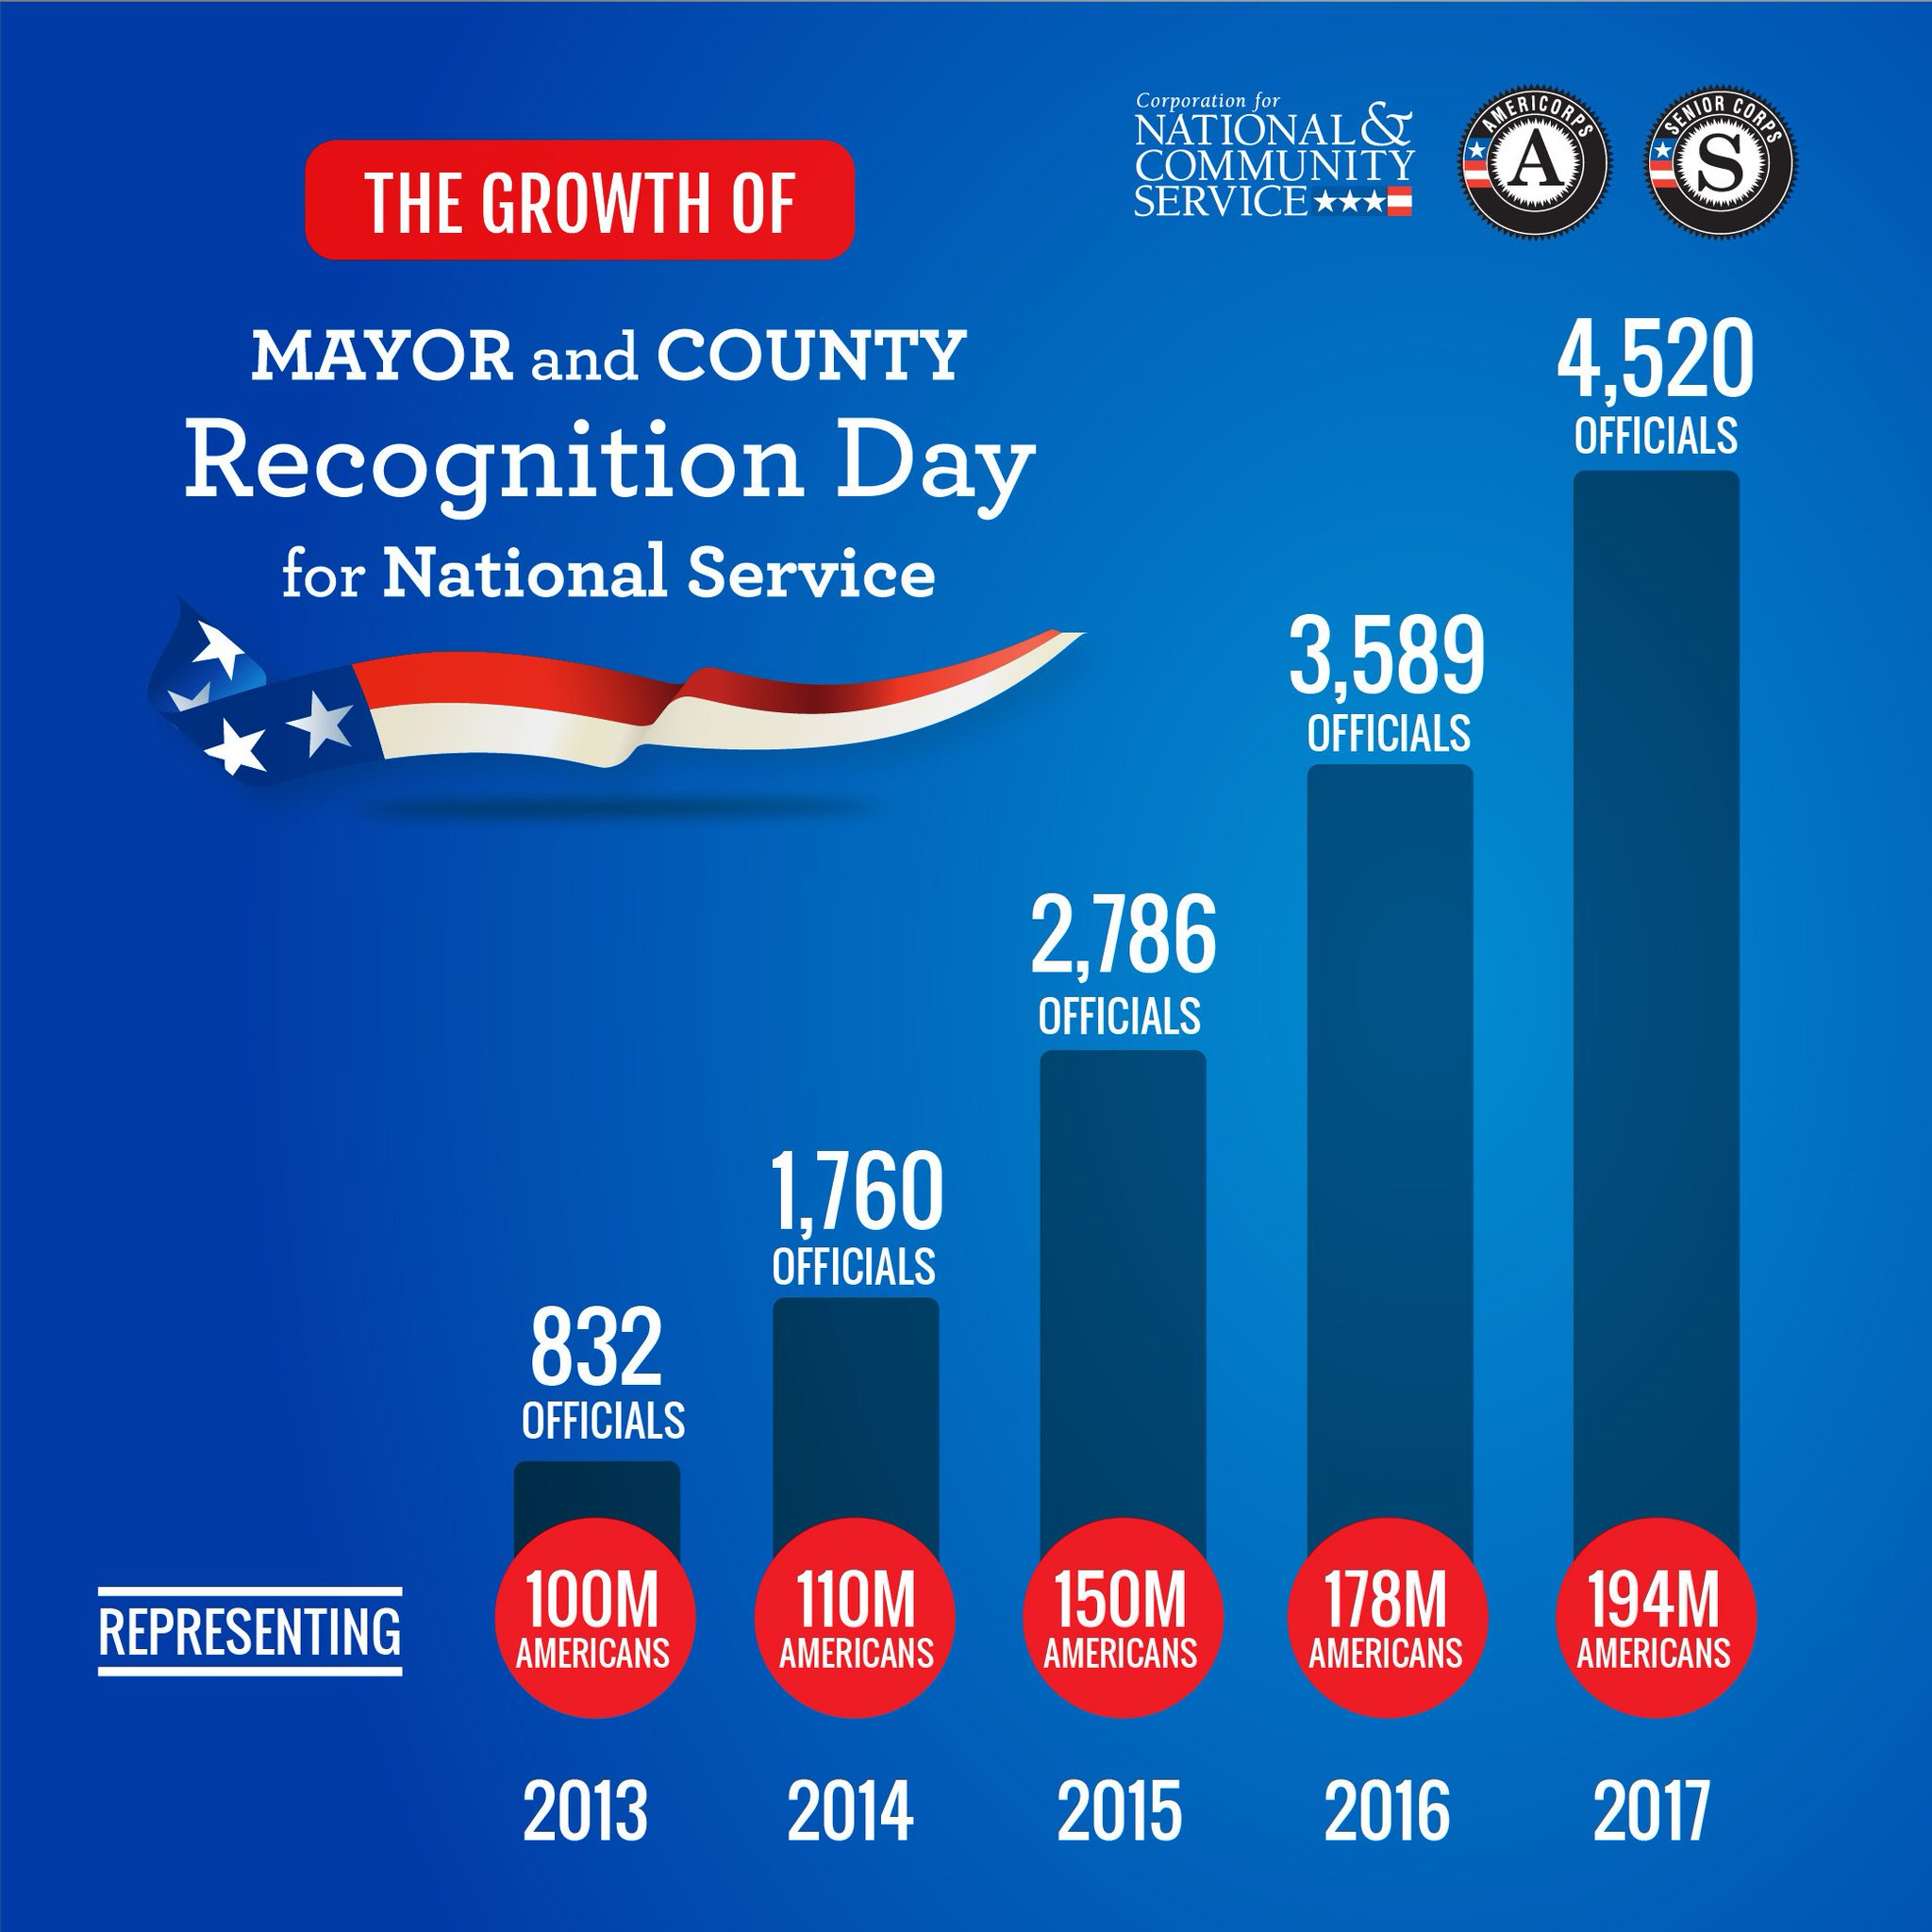 Tuesday was largest #Mayor4Service & #County4Service Day yet! Thanks to all officials recognizing @NationalService: https://t.co/94Ybe7Gmay https://t.co/7wTH5vzlRQ